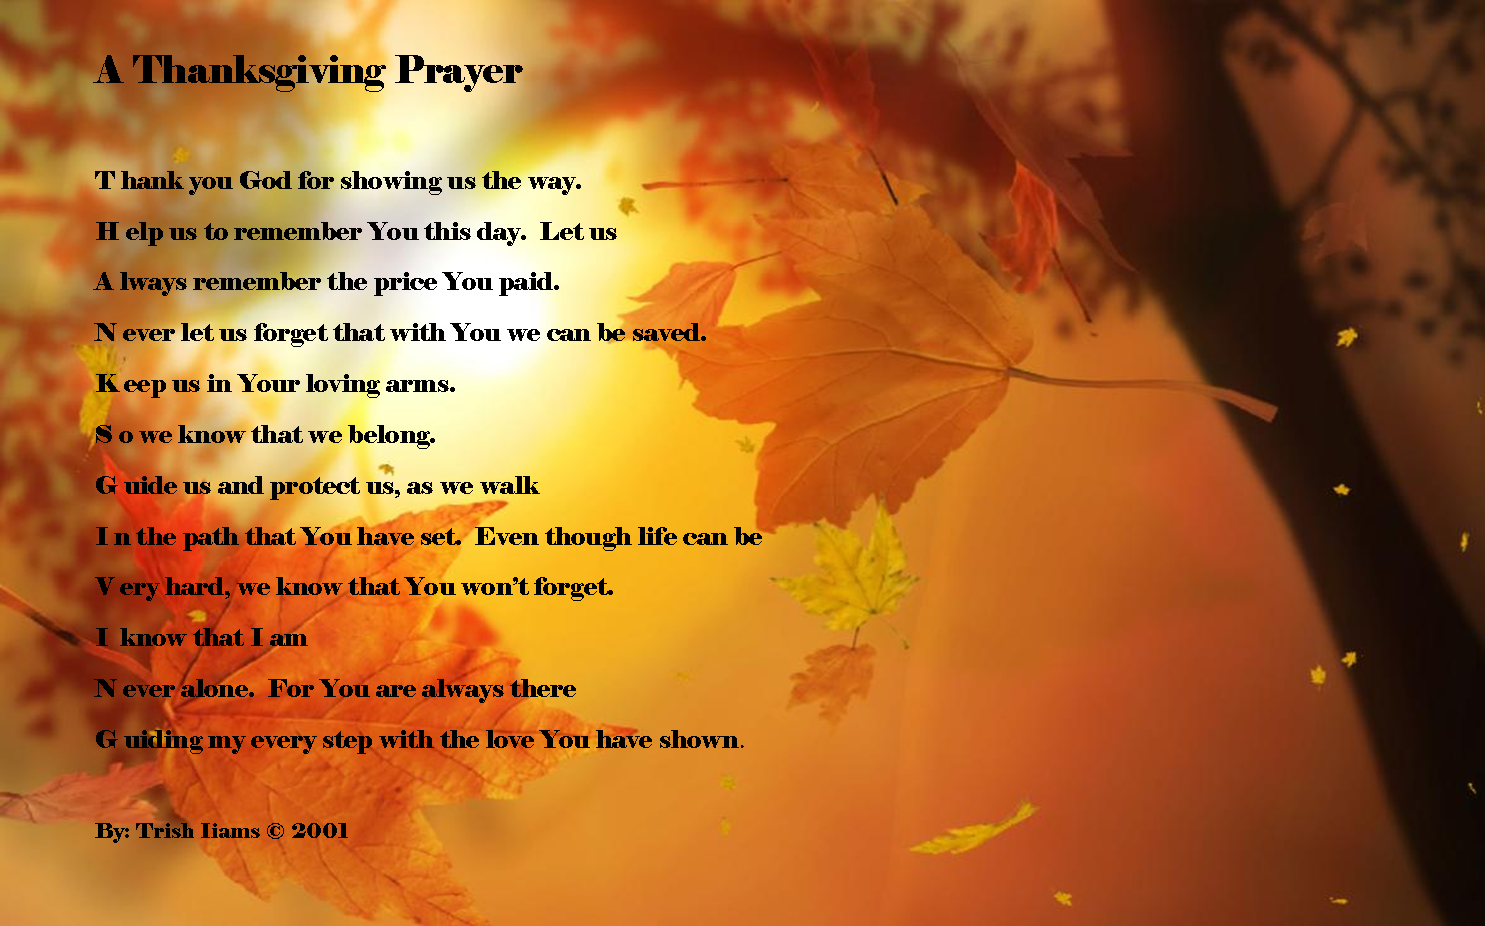 prayer of thanksgiving for singing with all on